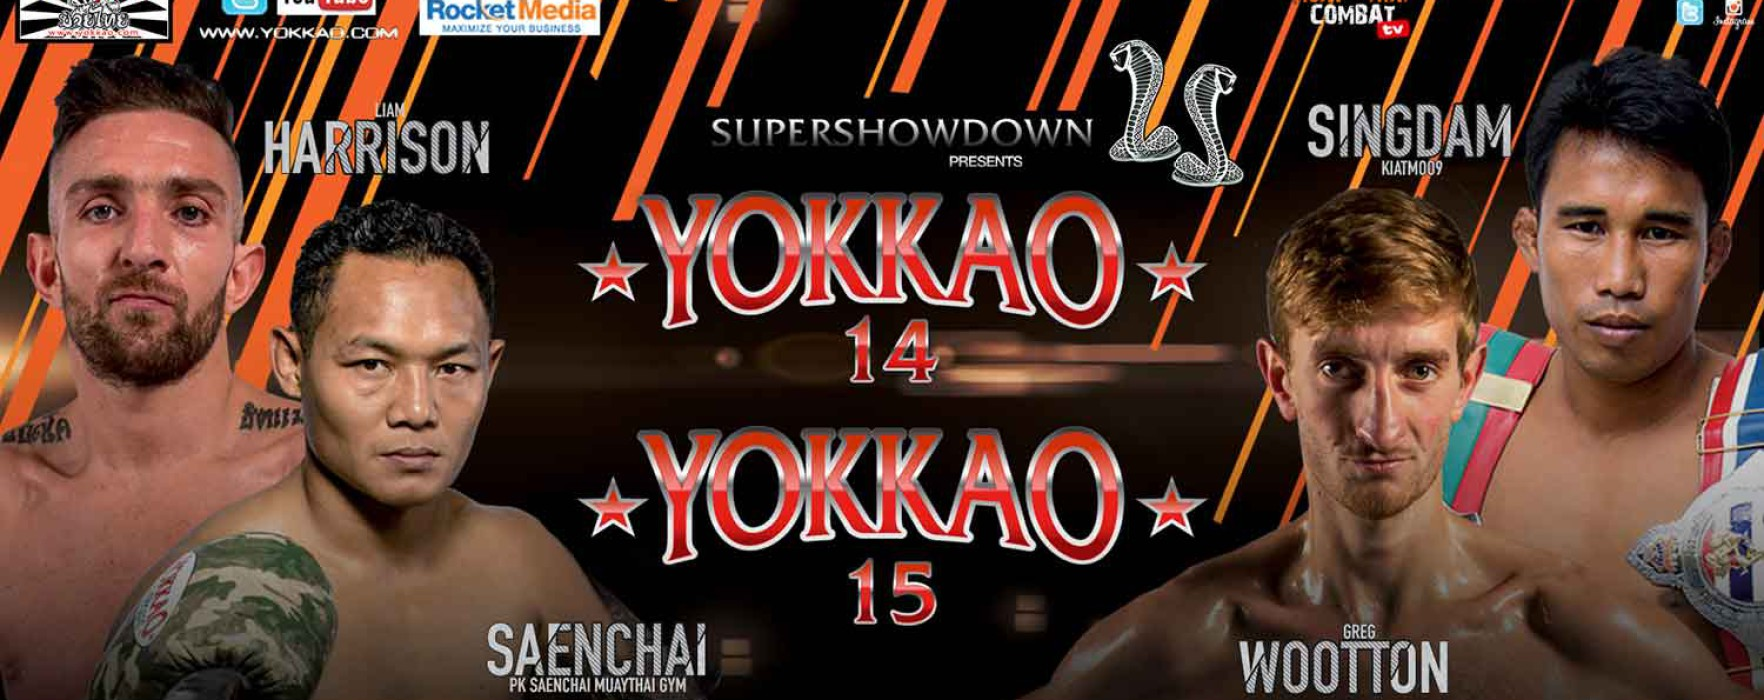 Flash News: Saenchai vs Greg Wootton e Singdam vs Liam Harrison – Yokkao 14/15